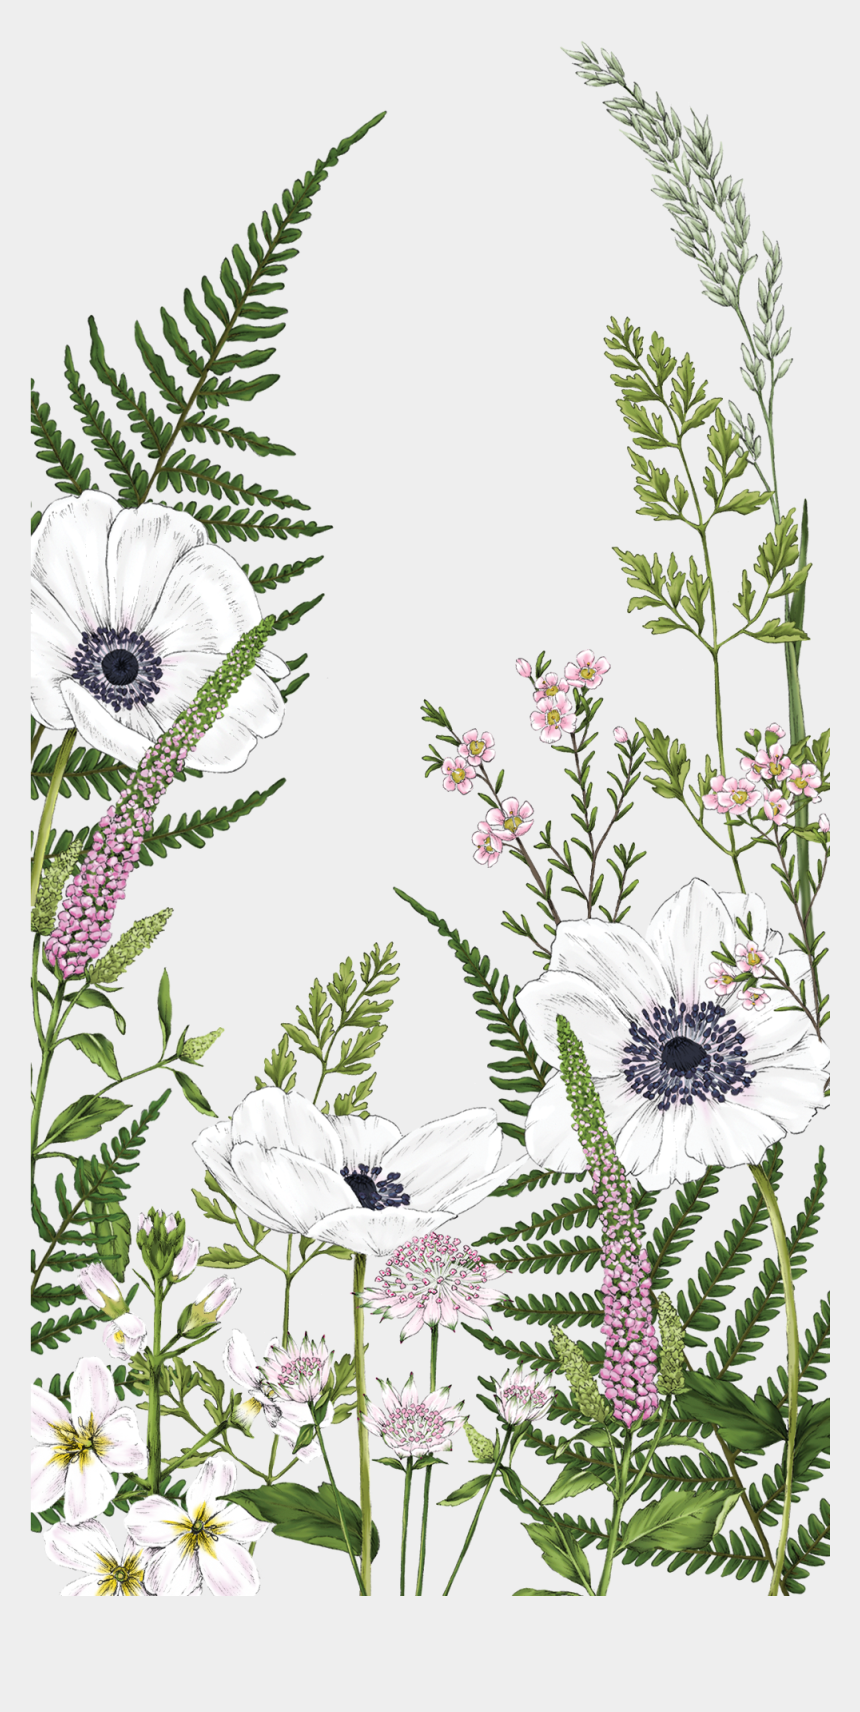 kate spade flowers clipart, Cartoons - #casetify #art #design #flowers #fern Wallpaper - Wildflower Drawing Wallpaper Iphone